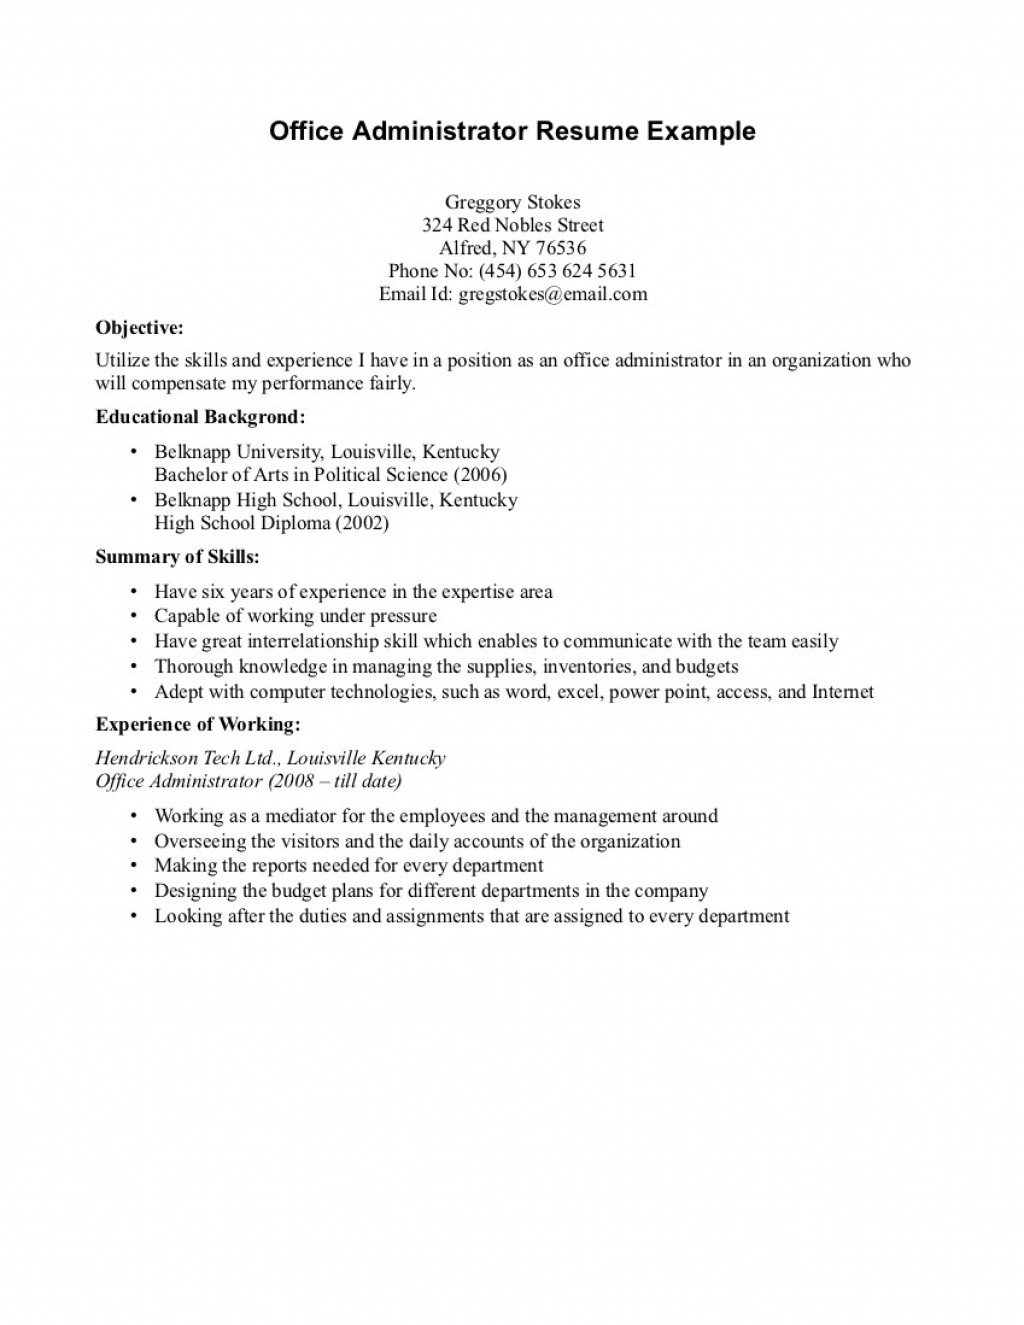 020 Essay Example High School Experience Free Sample Resumes With No Work Cv For Year Old Leaver Dreaded Large